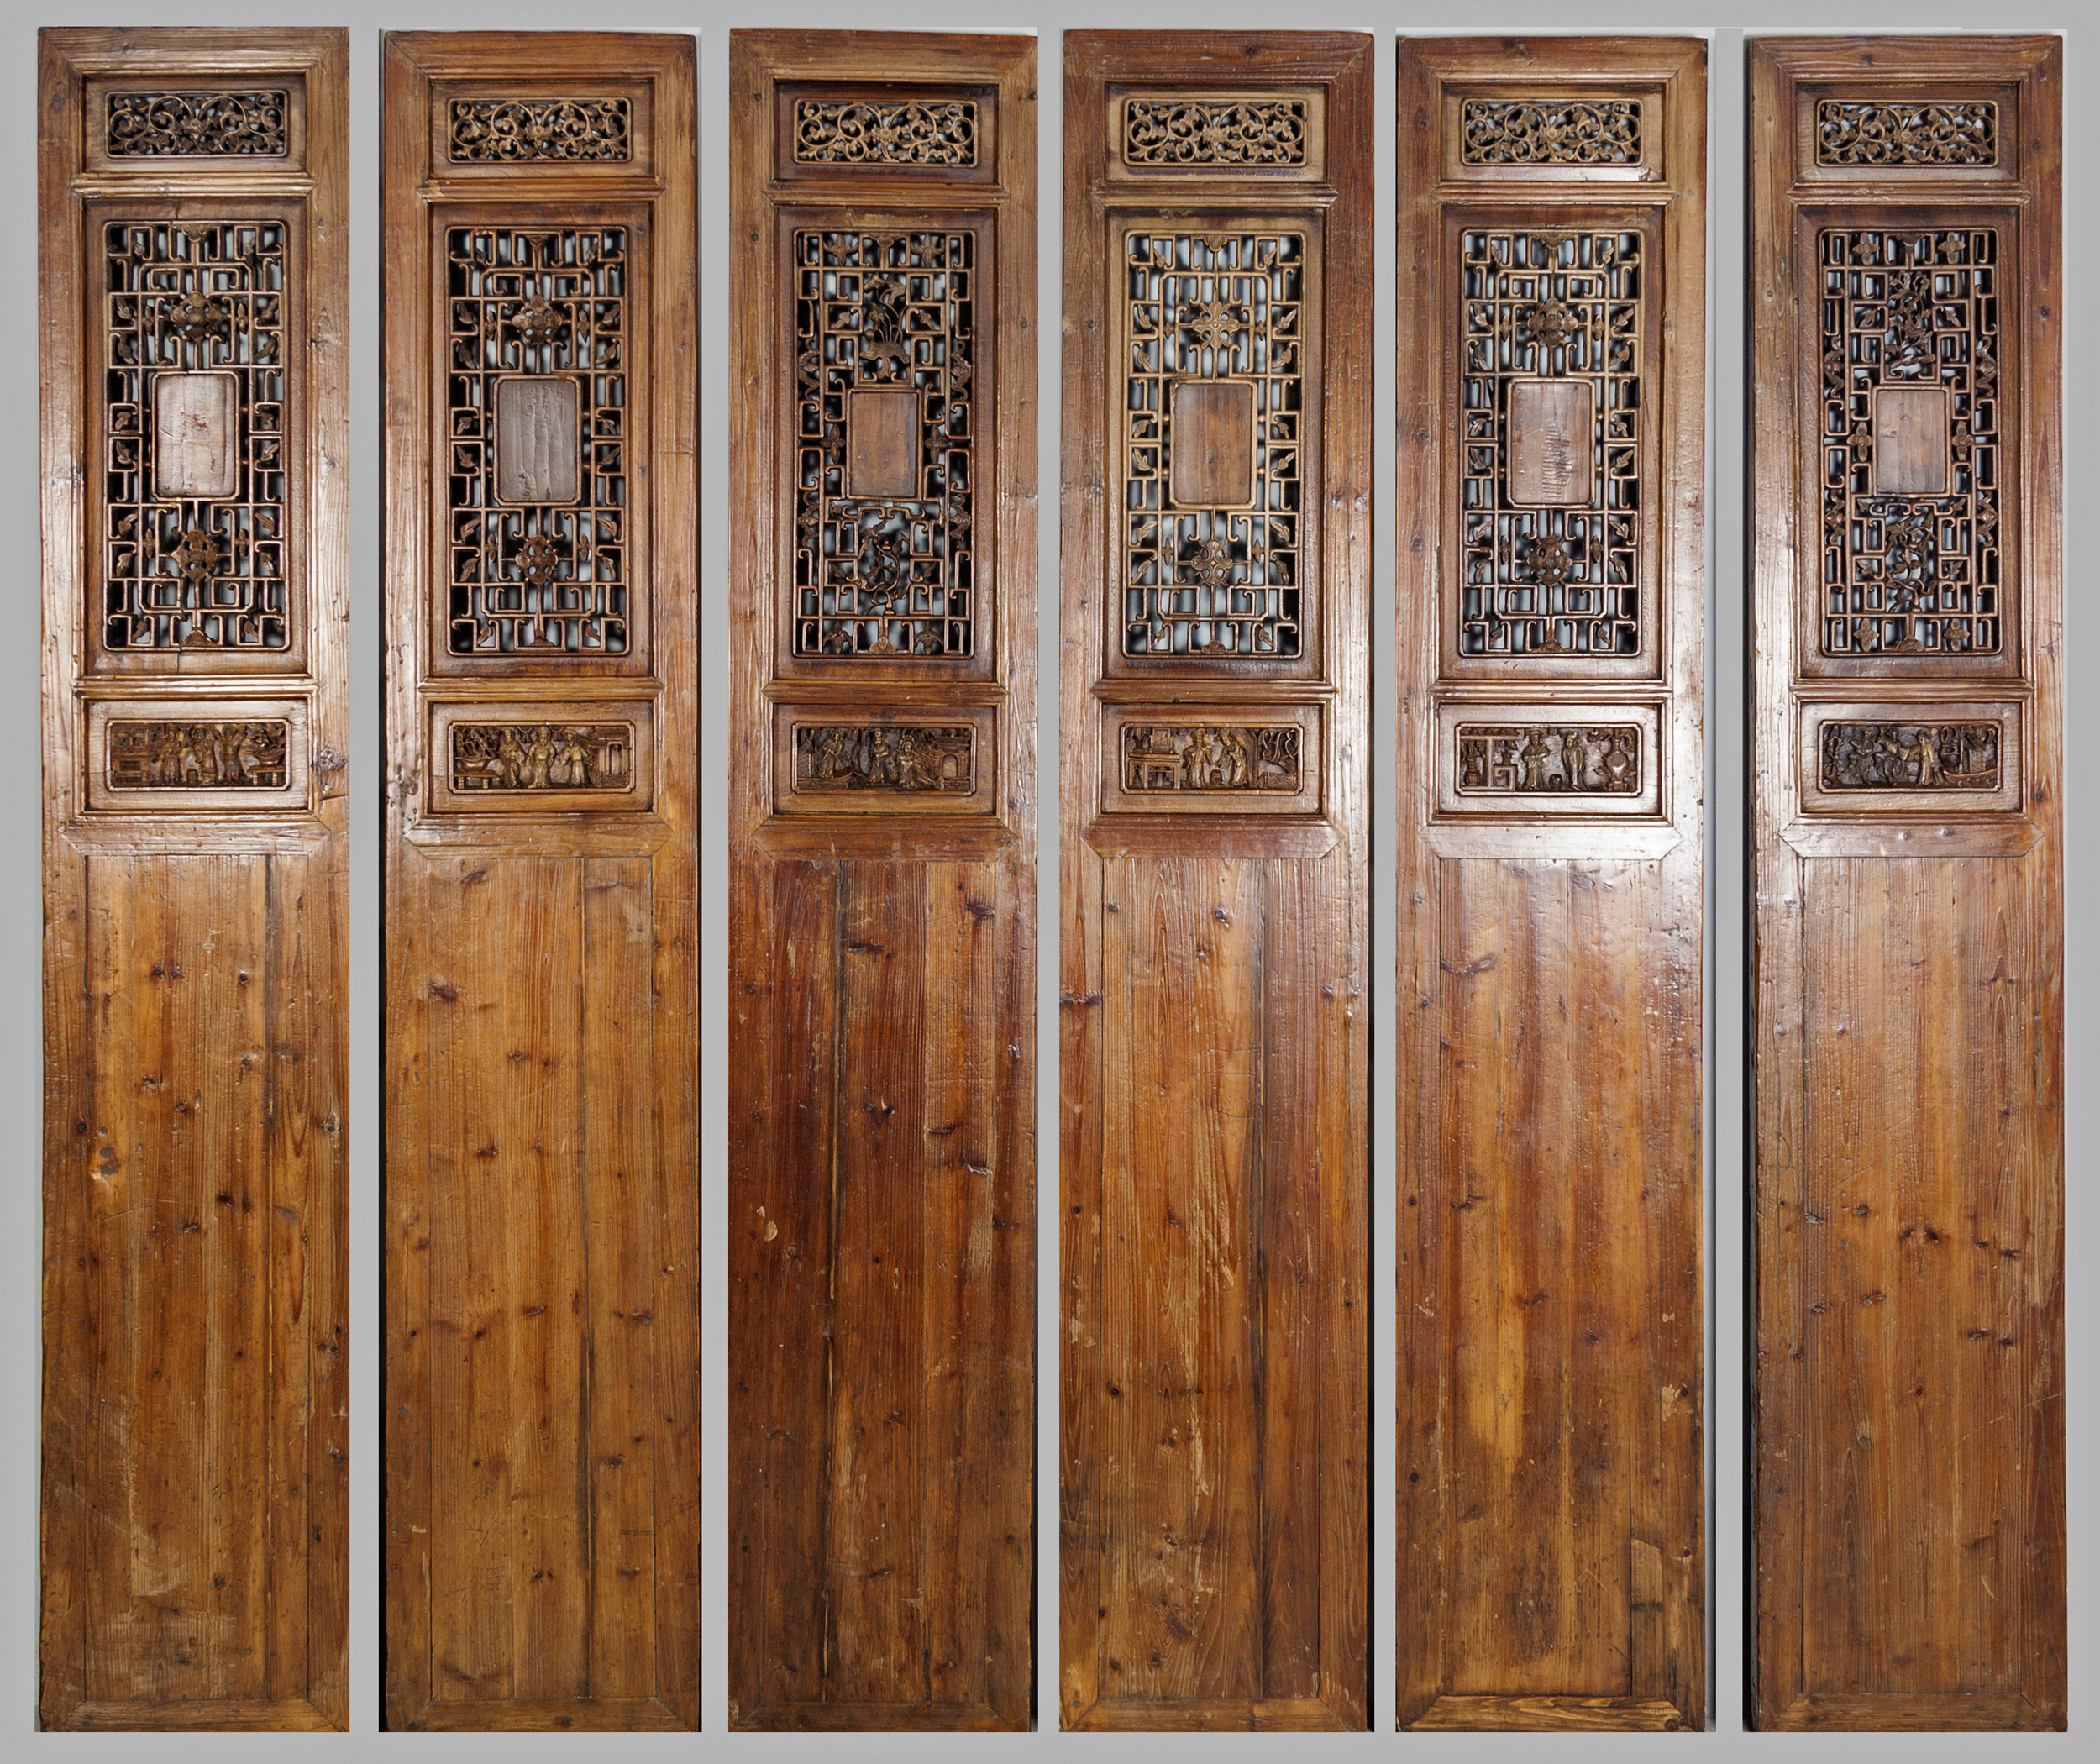 Lot 394 - A SET OF SIX ORIENTAL HARDWOOD SCREEN PANELS, the upper-section with pierced and fretted panels,